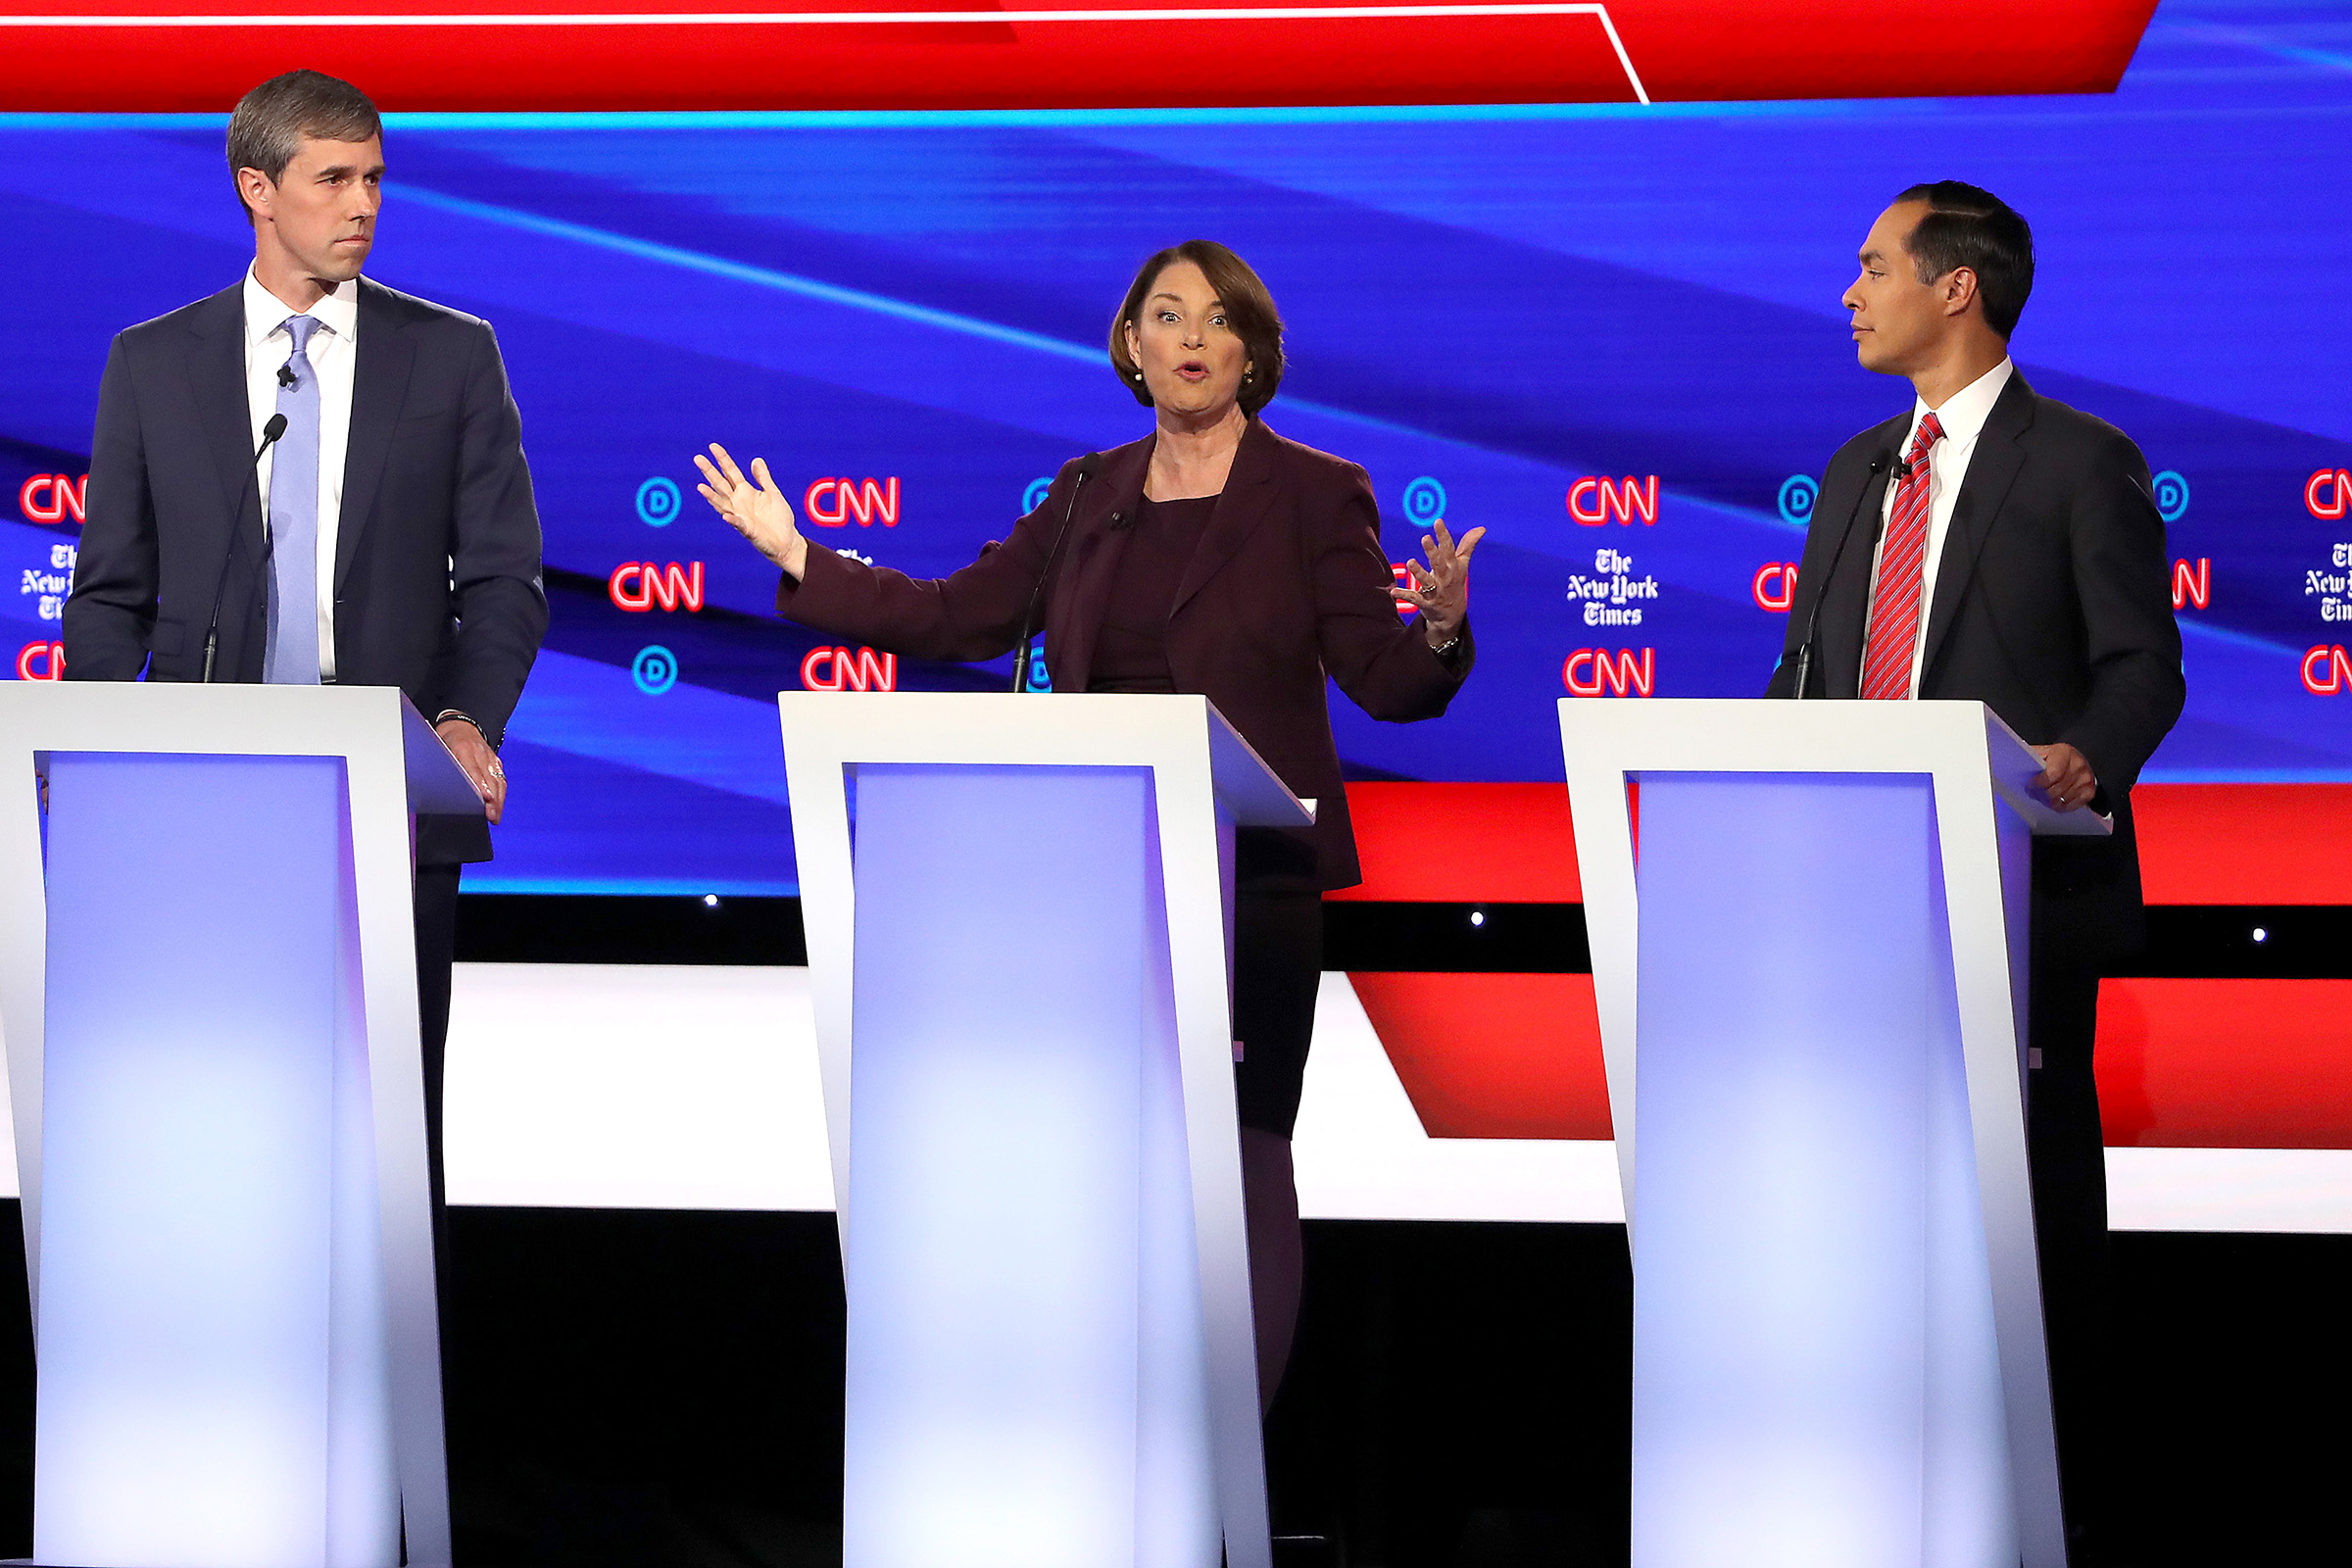 (L-R) Former Texas congressman Beto O'Rourke, Sen. Amy Klobuchar (D-MN) and former housing secretary Julian Castro participate in the Democratic Presidential Debate at Otterbein University on Oct. 15, 2019 in Westerville, Ohio.